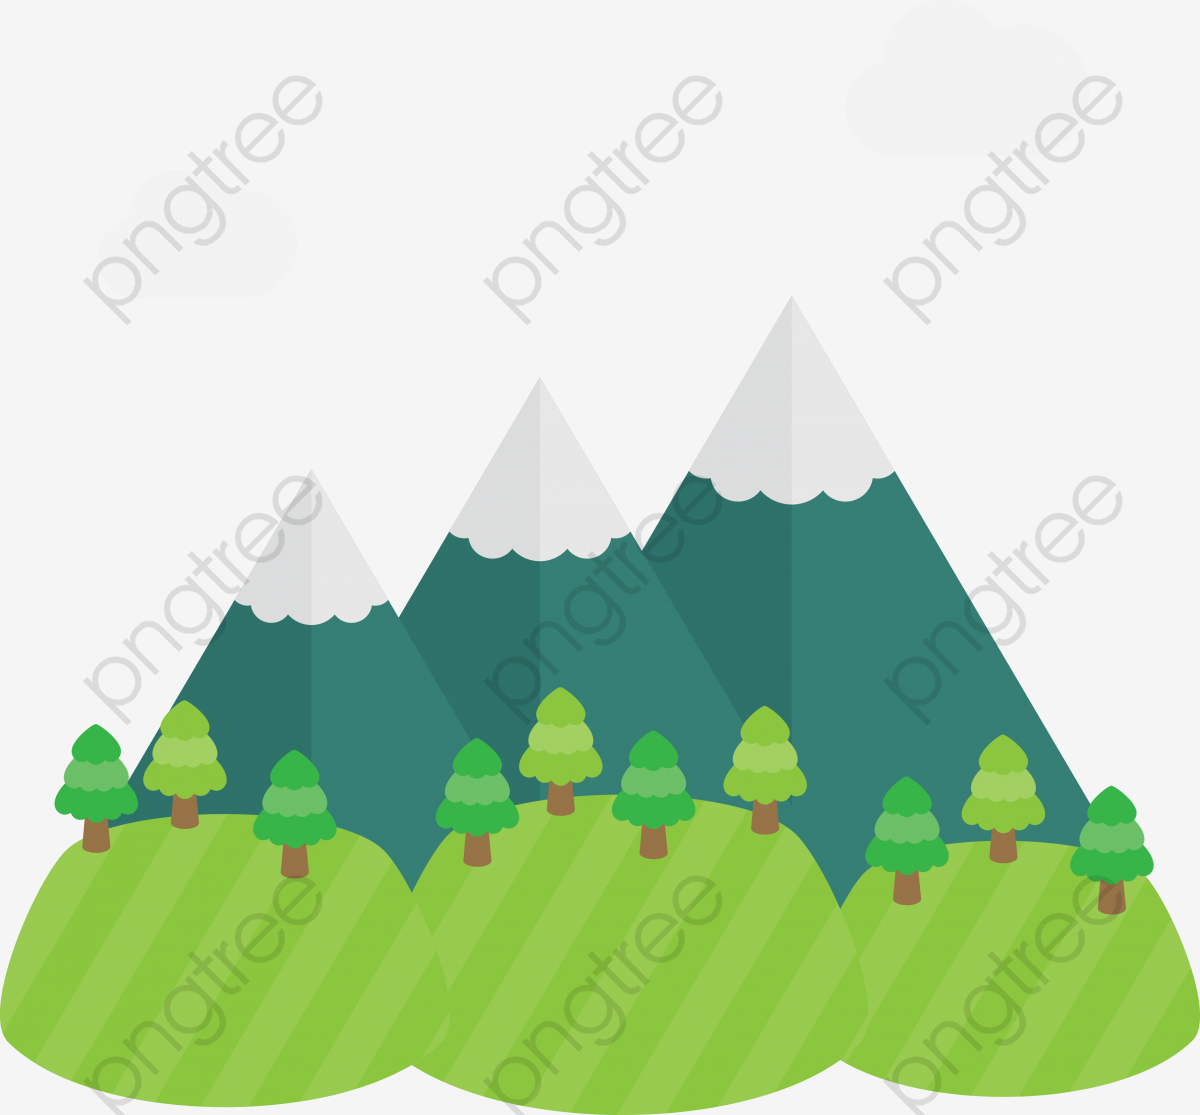 cartoon mountain png vector cartoon three hills, cartoon clipart, mountain